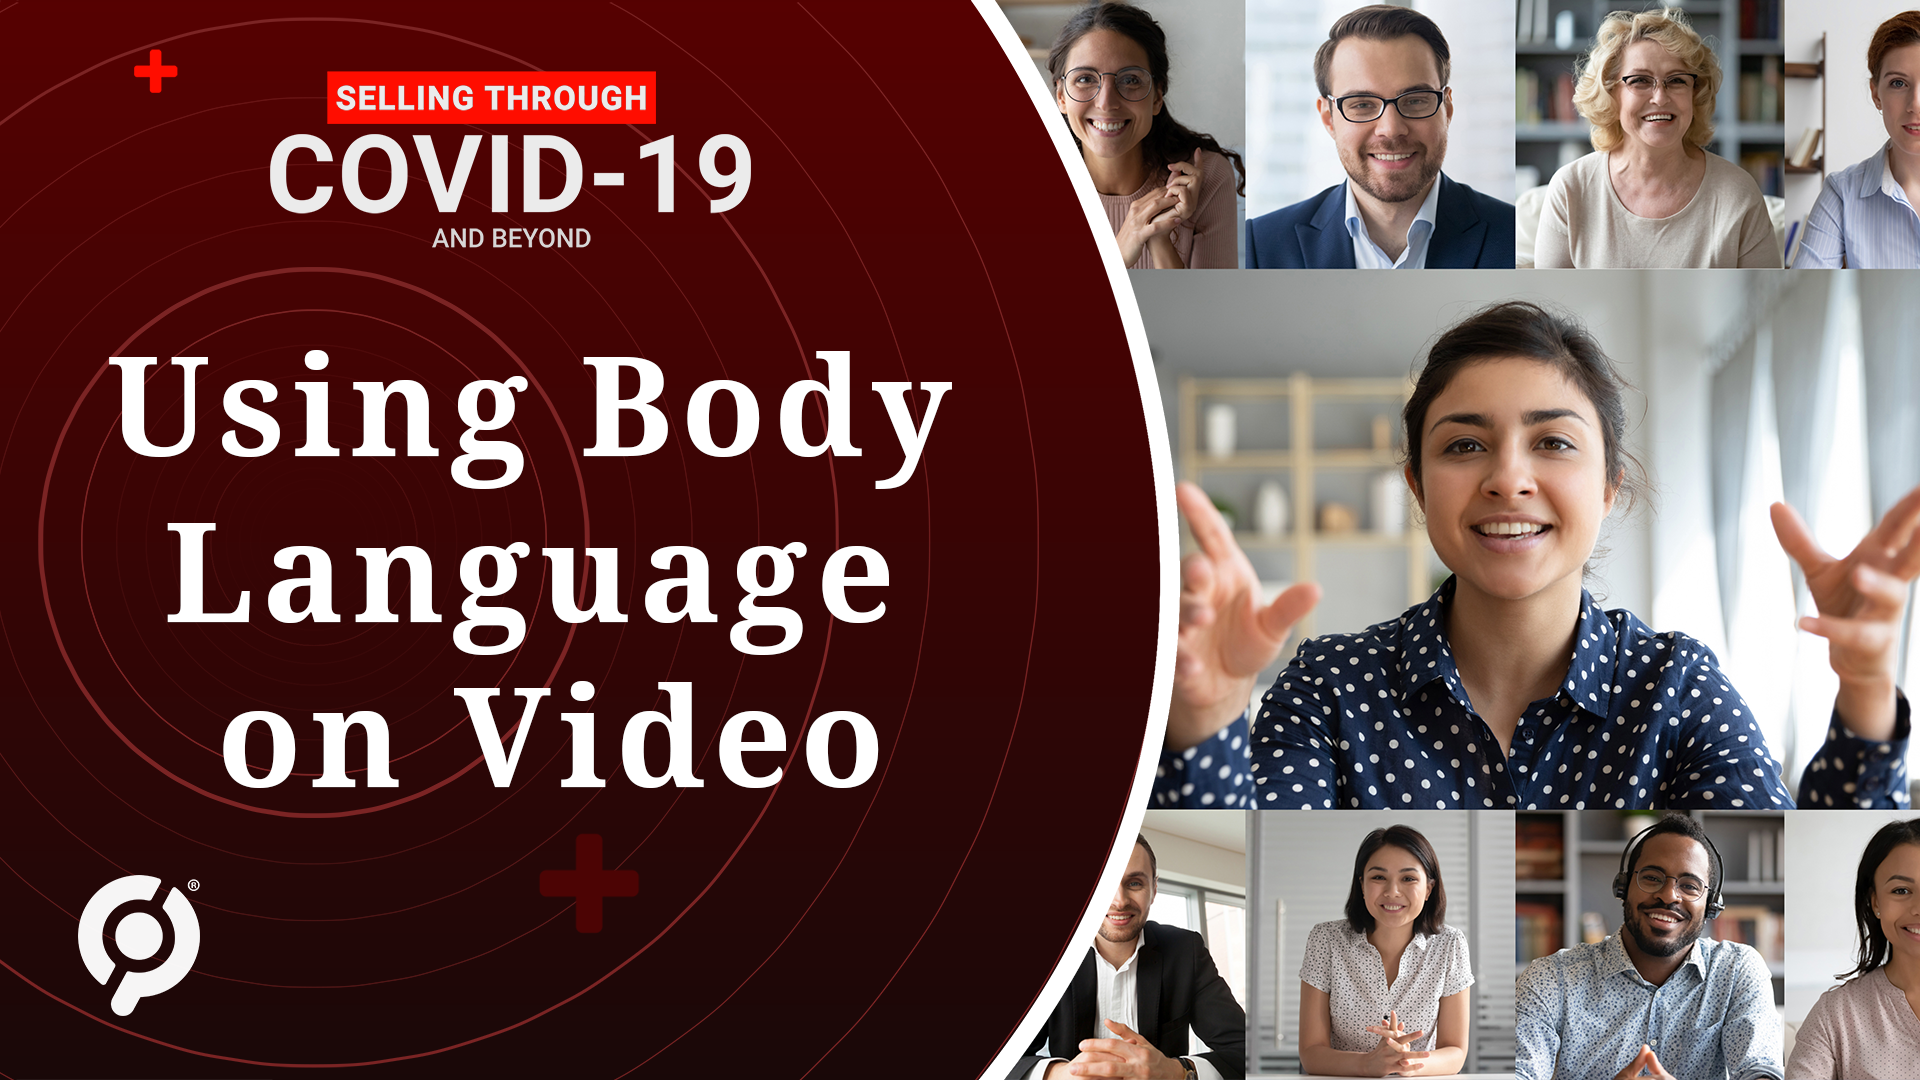 Selling Through COVID-19 and Beyond: Using Body Language on Video